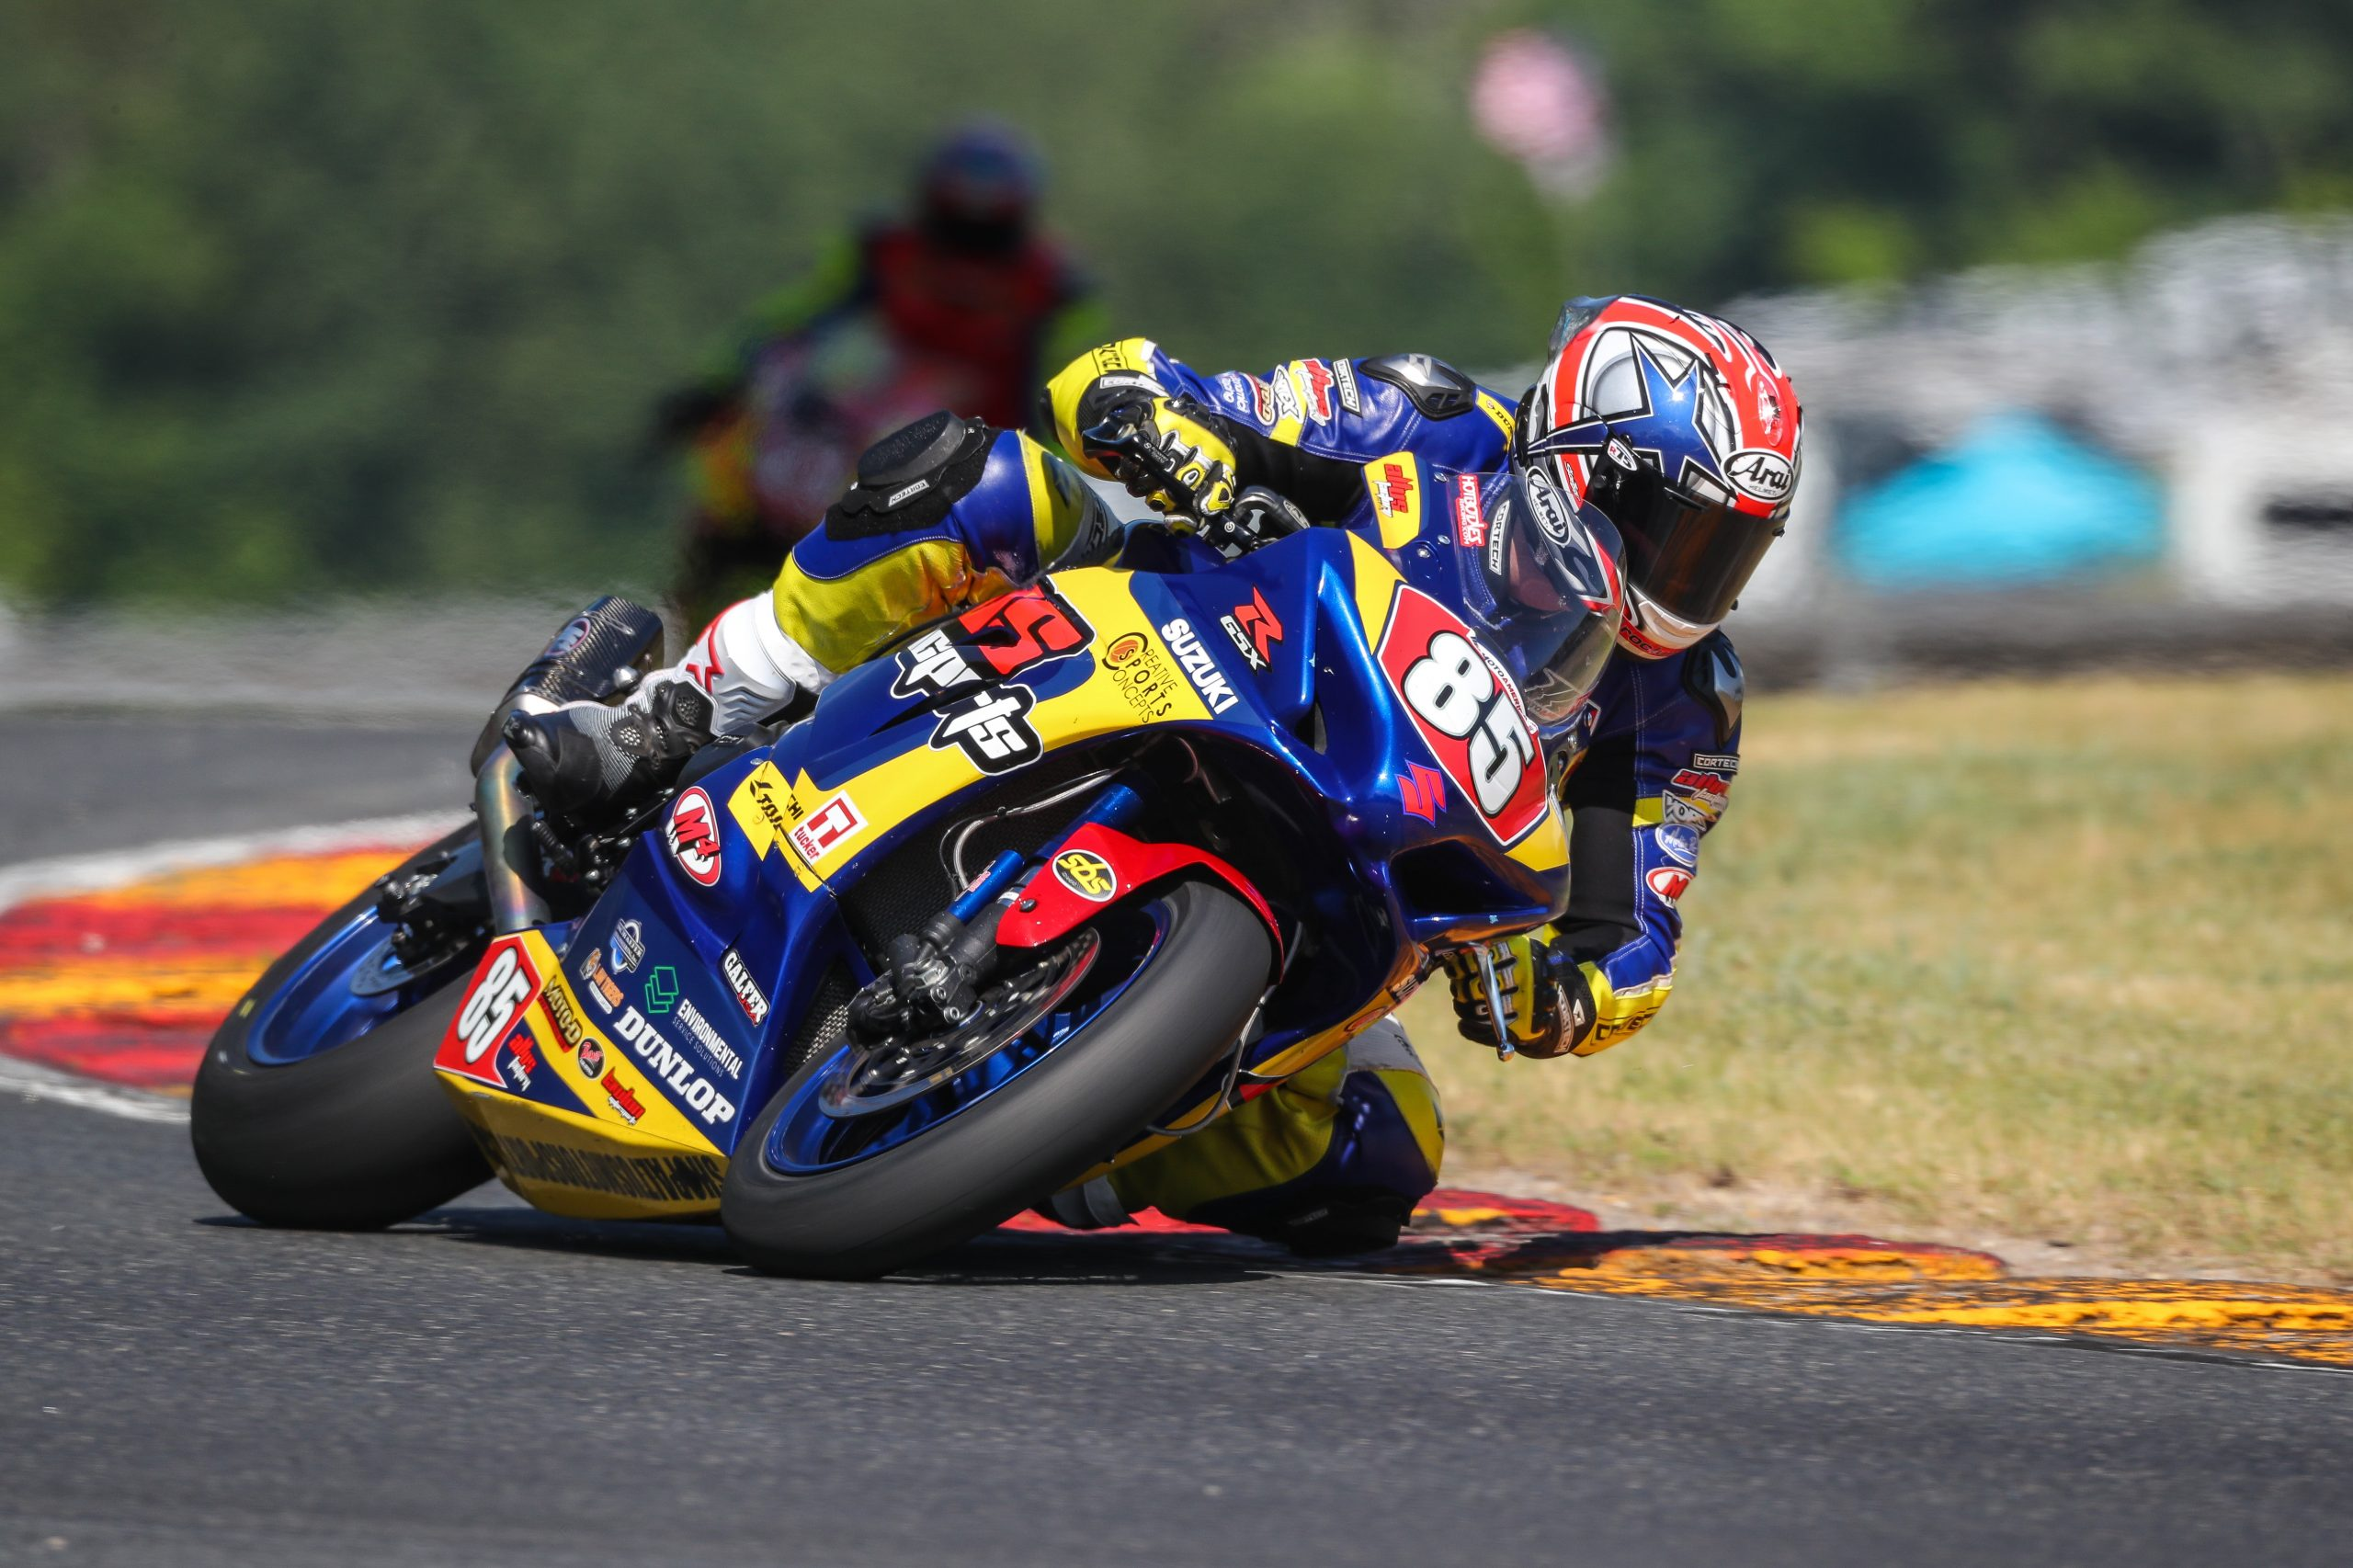 210614 Jake Lewis (85) earned a hard-fought Stock 1000 victory on his race-winning Suzuki GSX-R1000